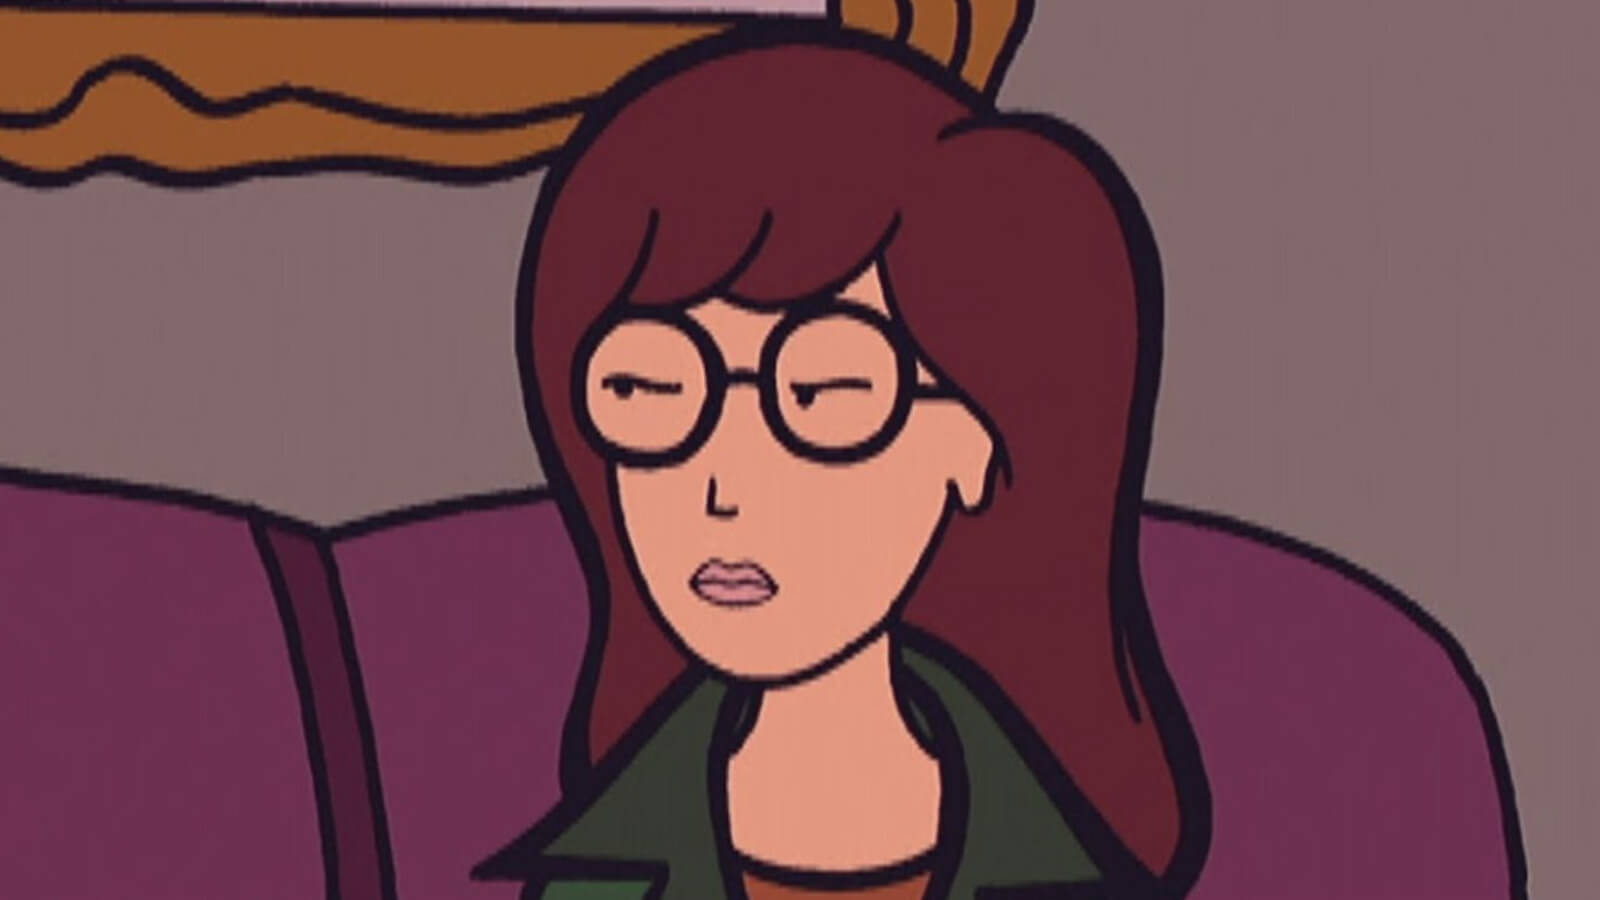 Daria Morgendorffer from Beavis and Butt-head cartoon characters with glasses